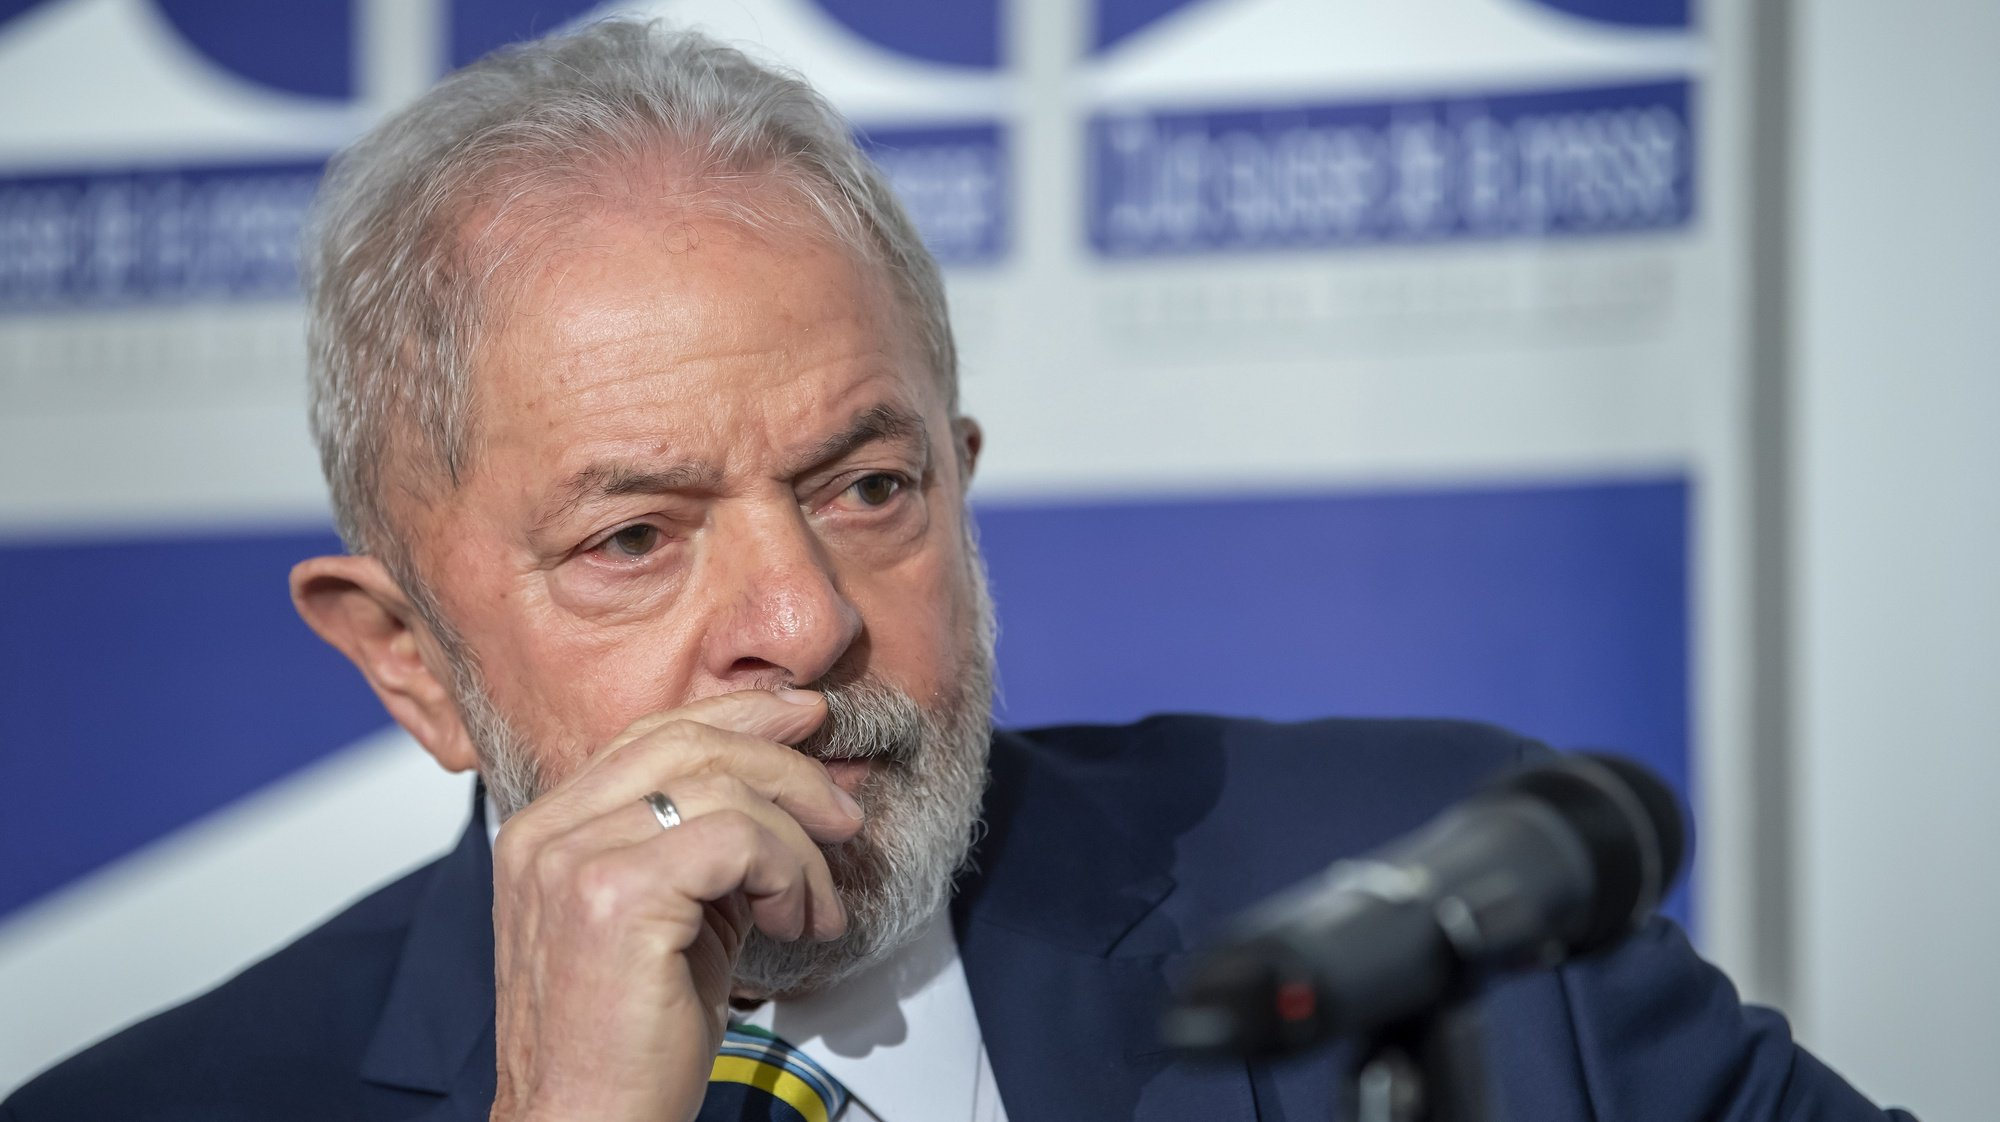 epa08275429 Former Brazilian president Luis Inacio Lula da Silva, speaks about 'Dialogue about inequality with global unions and general public', during a press conference at the Geneva press club, in Geneva, Switzerland, 06 March 2020.  EPA/MARTIAL TREZZINI